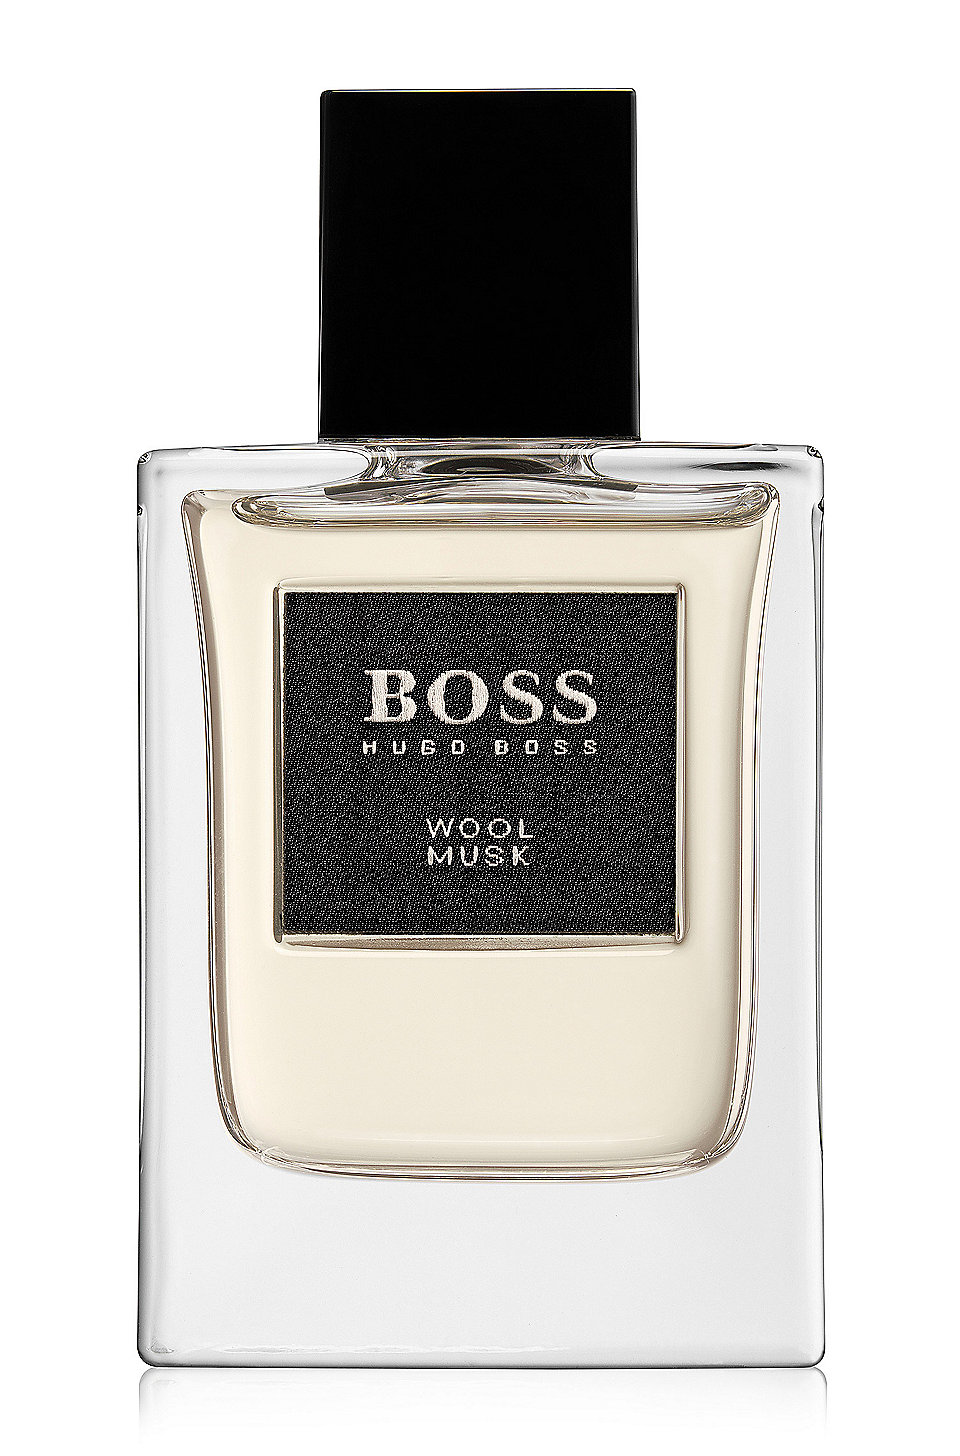 Boss Boss The Collection Wool Musk Eau De Parfum